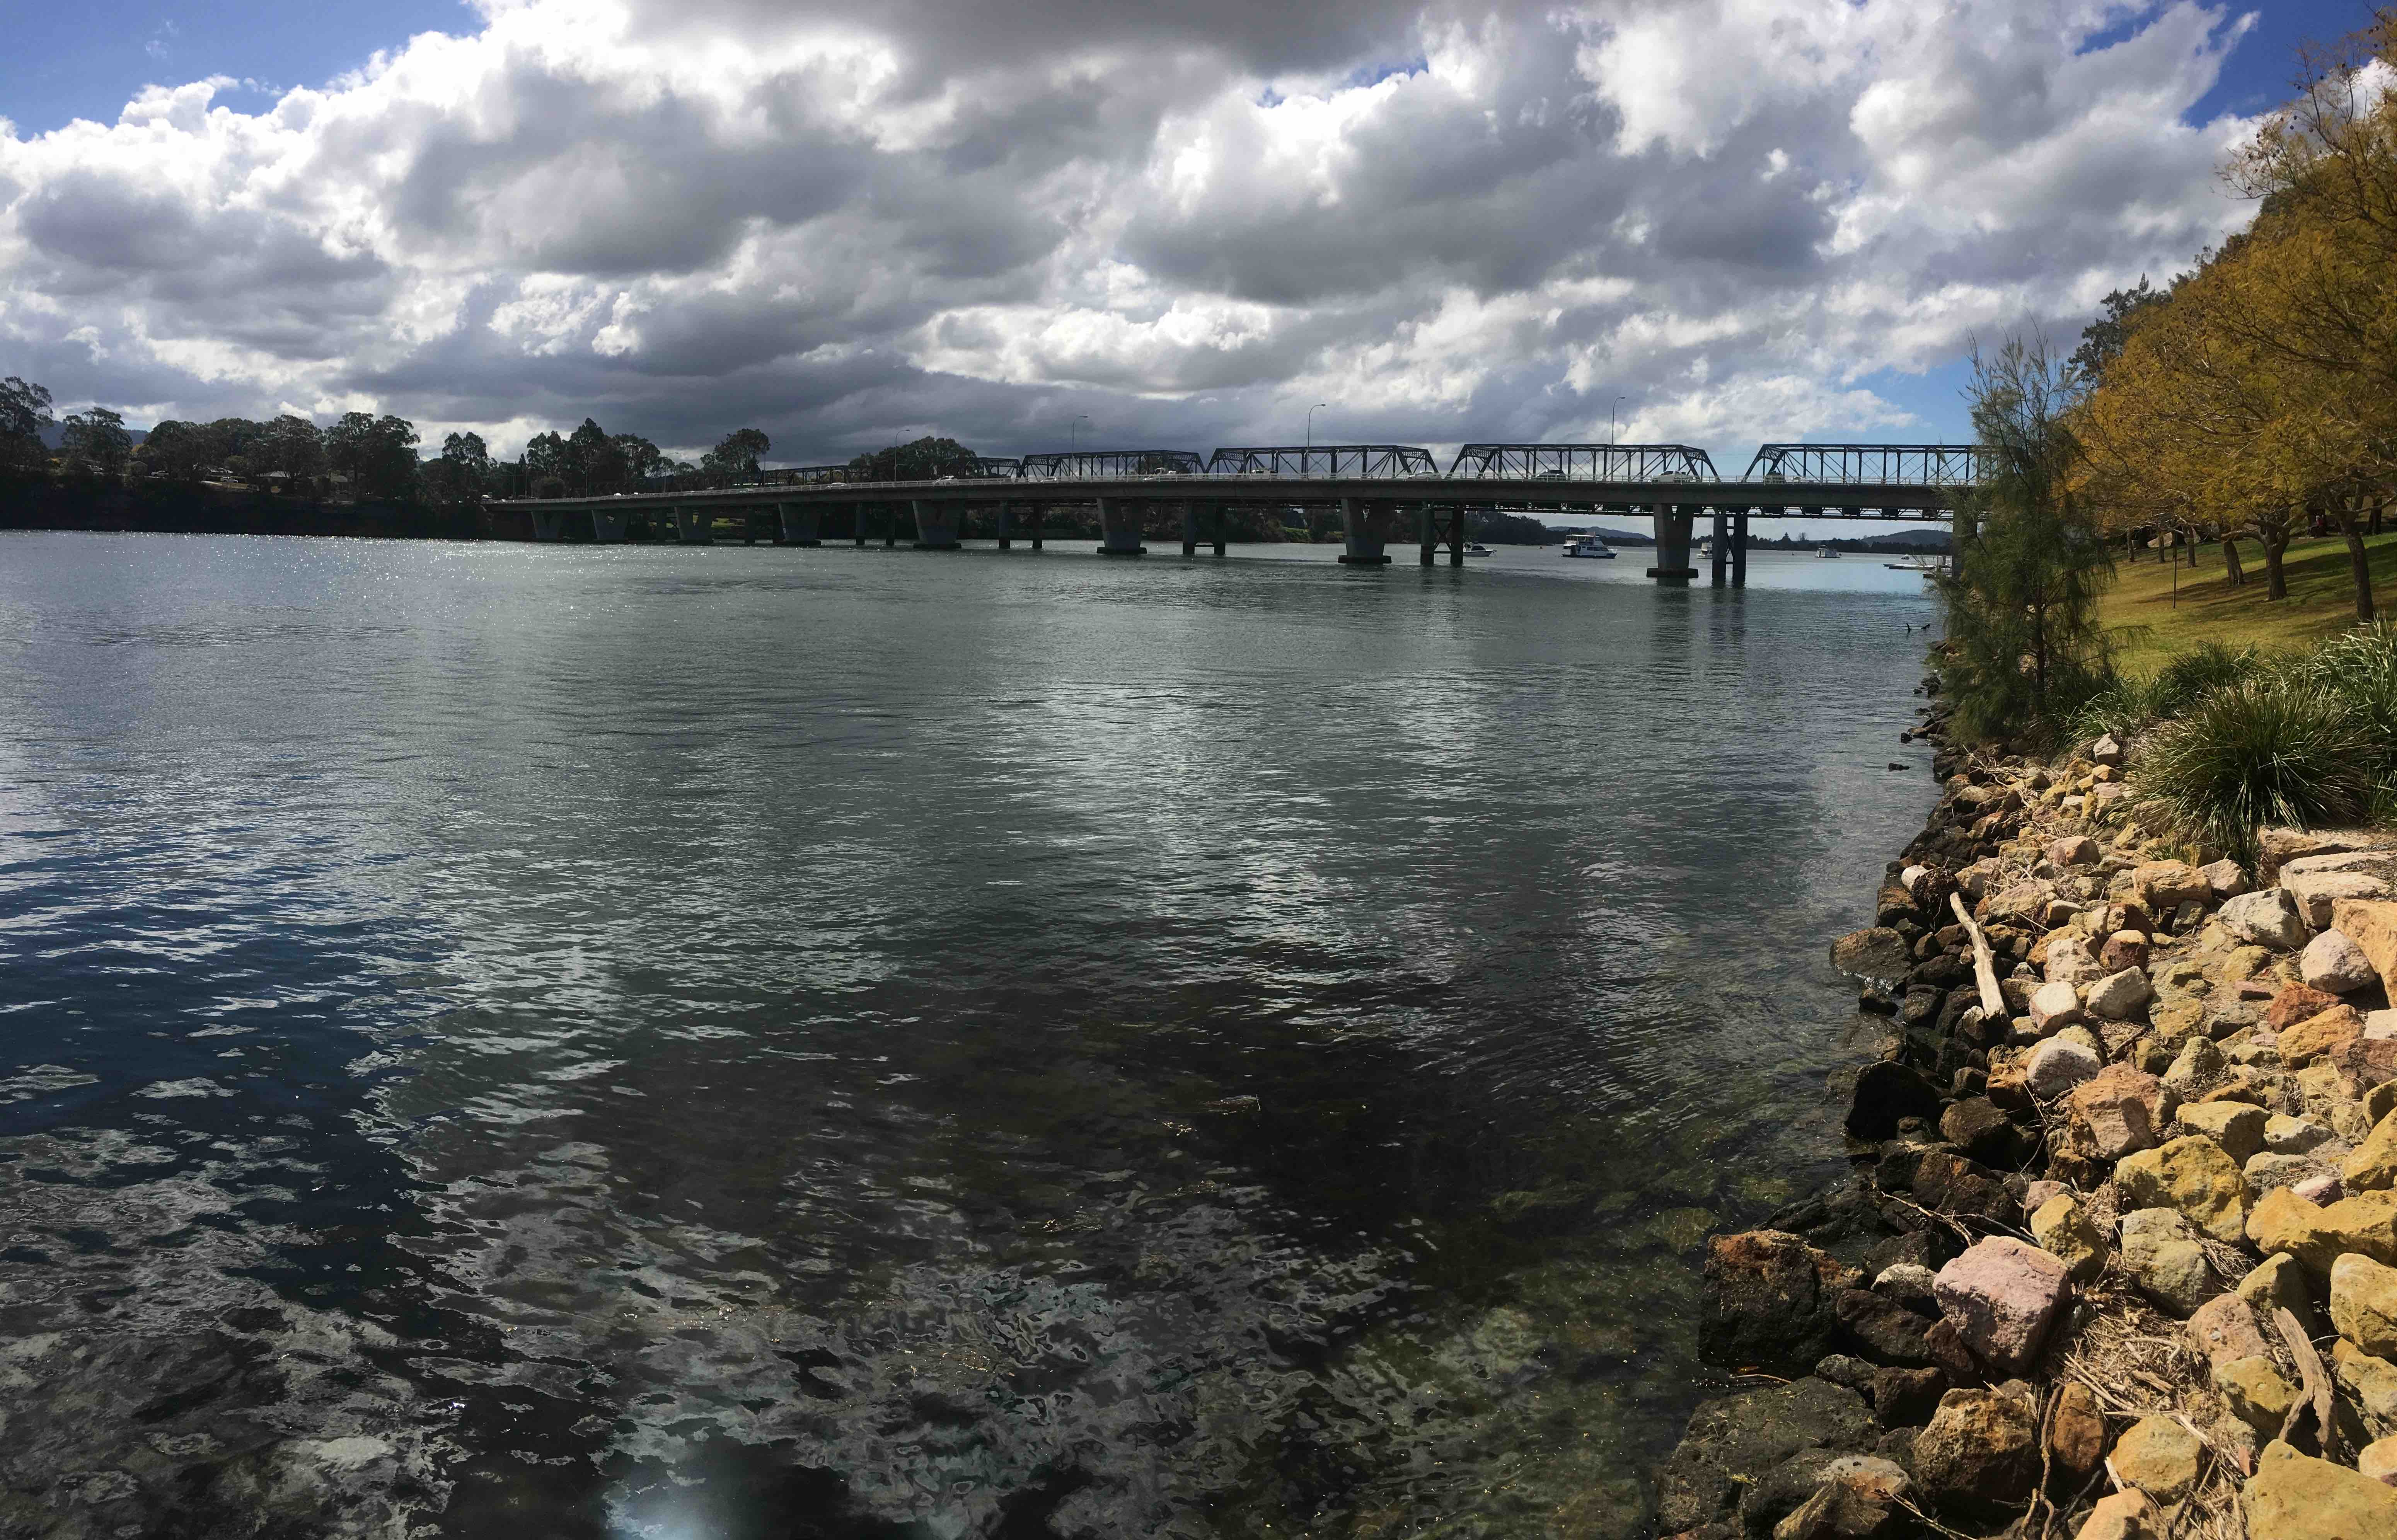 Sydney set to suck more water from thirsty Shoalhaven River as Minister suspends transfer rules